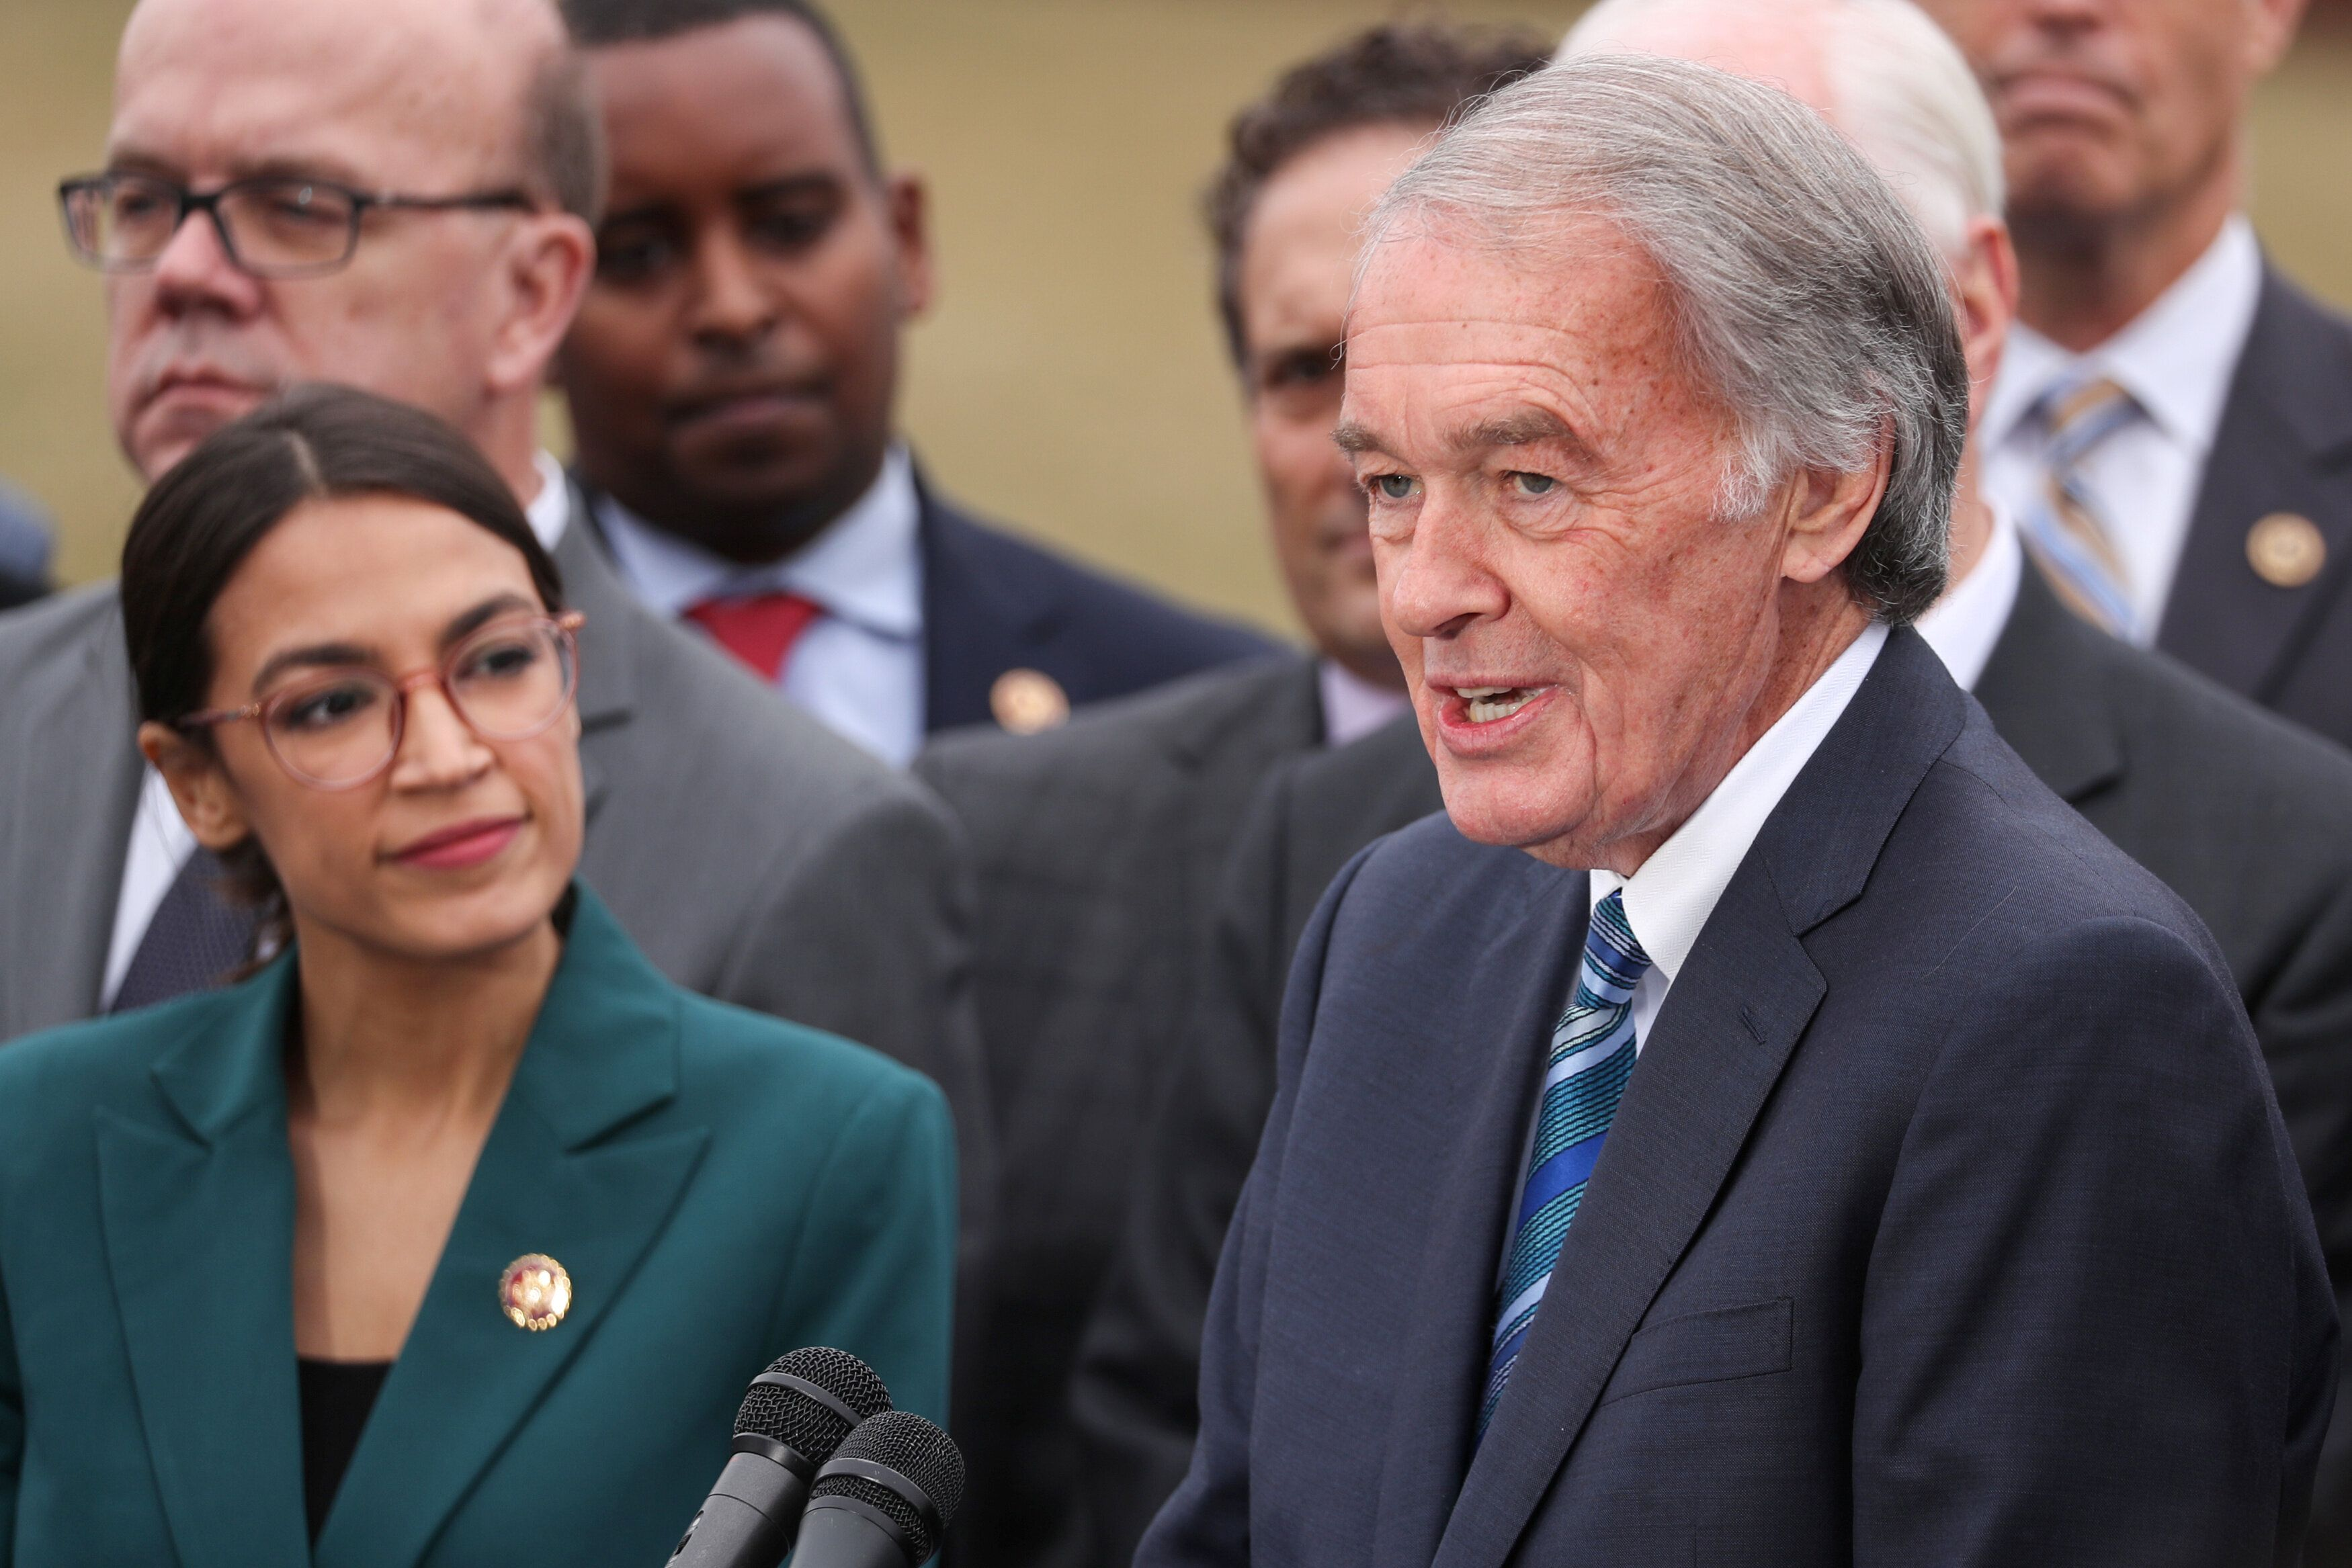 Rep. Alexandria Ocasio-Cortez (D-N.Y.) and Markey hold a news conference for their proposed Green New Deal in February 2019.